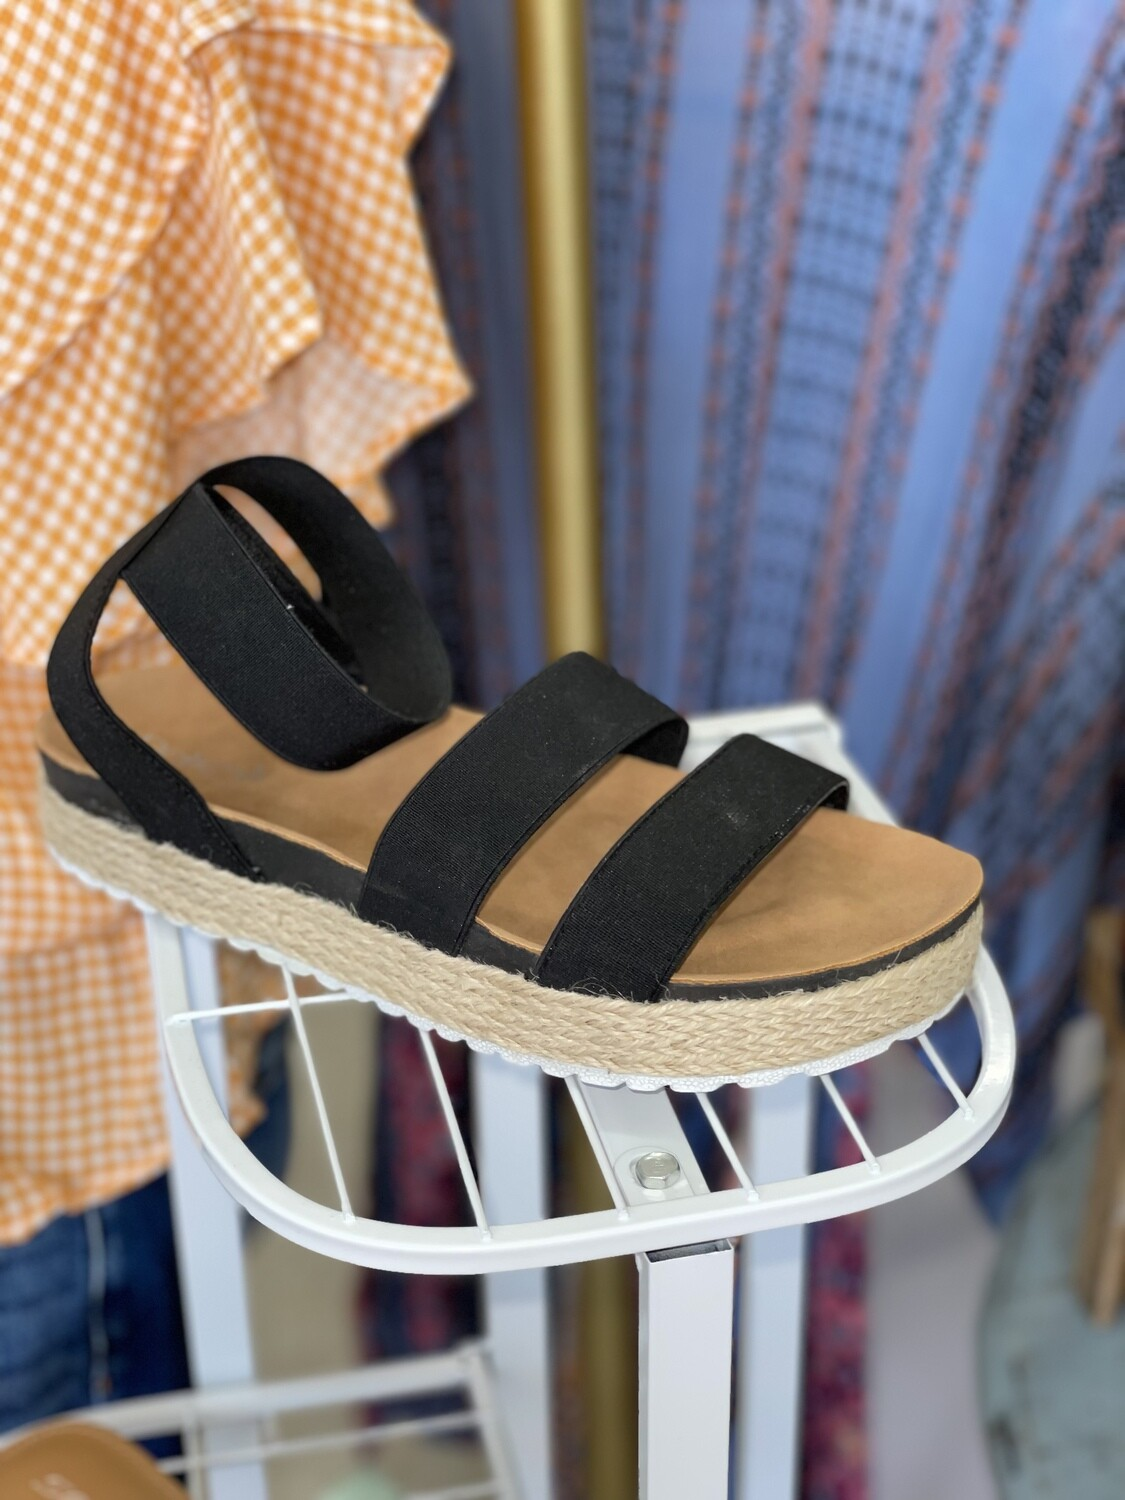 Blk Strappy Wedges